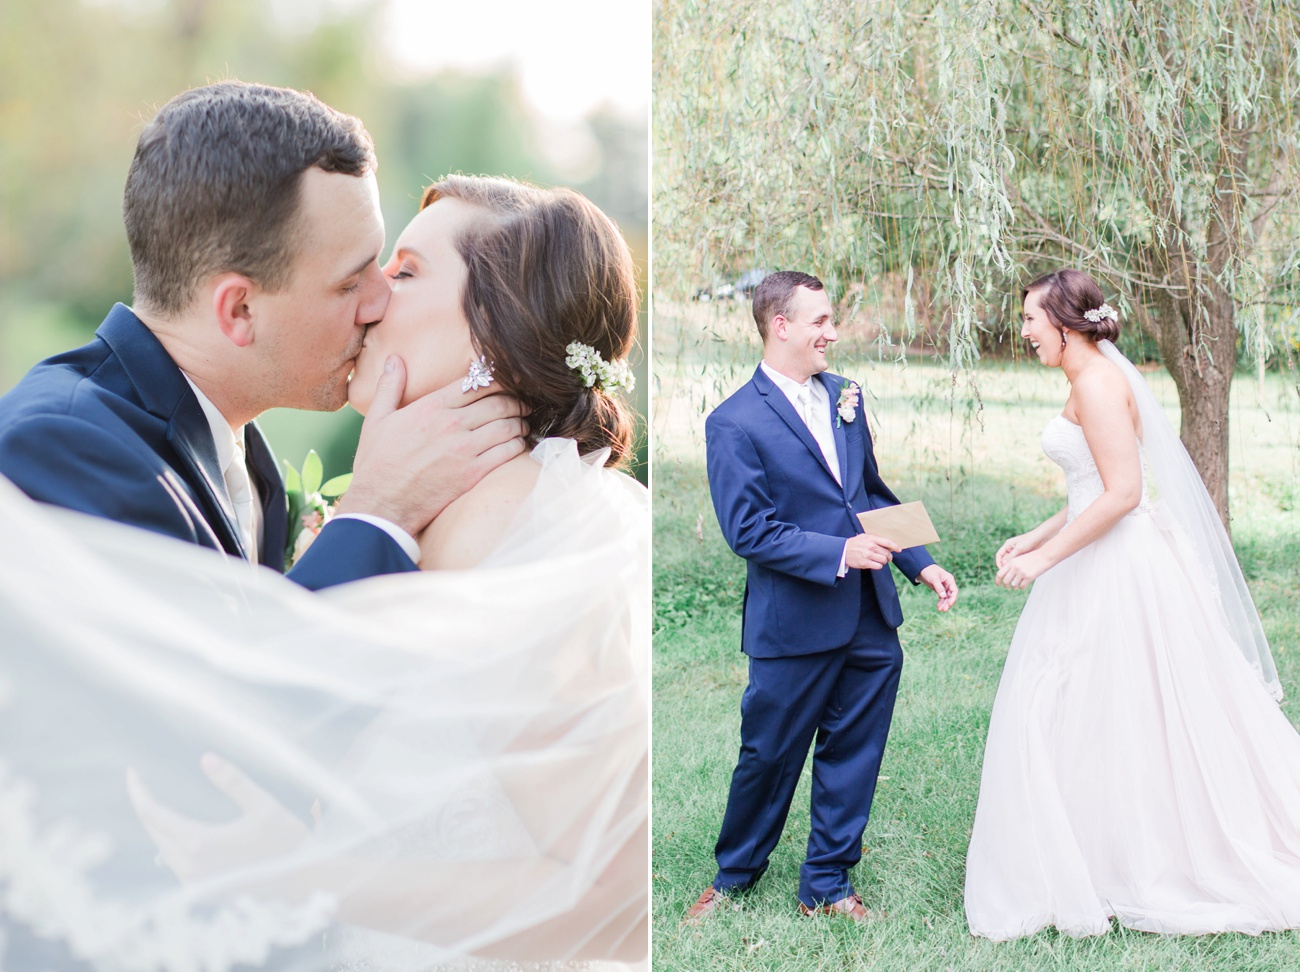 View More: http://jessgreenphotography.pass.us/rachel-daniel-wedding